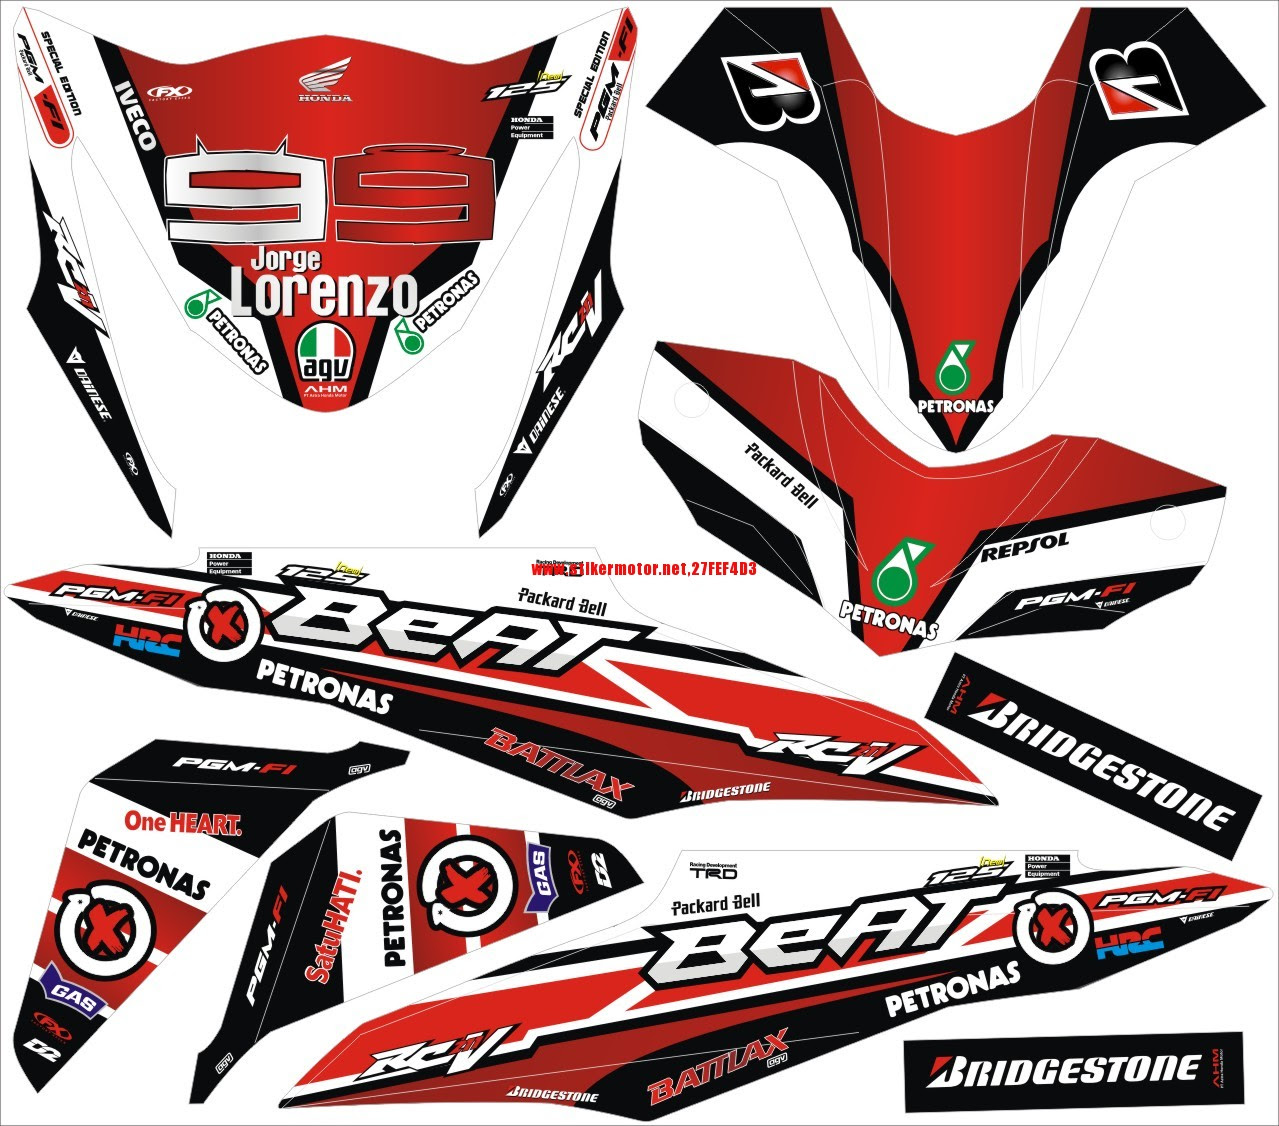 Kumpulan Modifikasi Honda Beat Pop Merah Terbaru Motor Cross